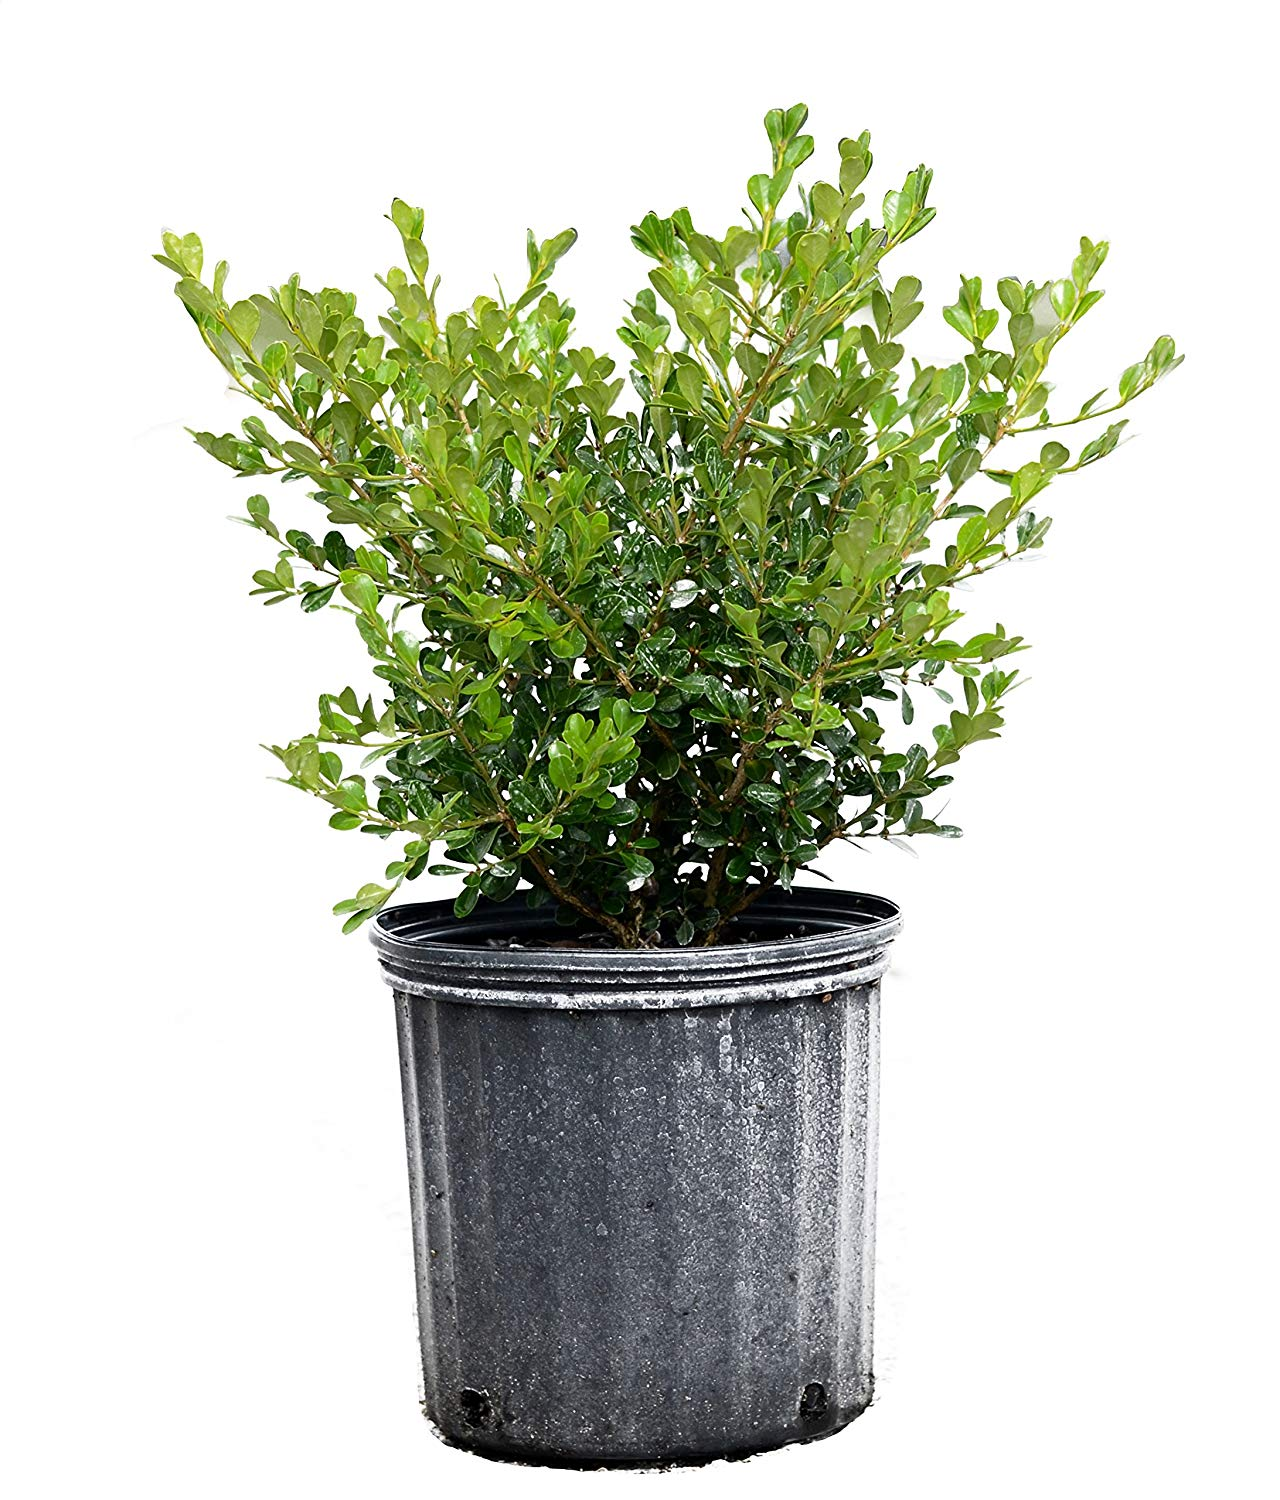 Buxus microphylla Japonica, Japanese Boxwood - 3 Gallon - 4 Pack Live Plant